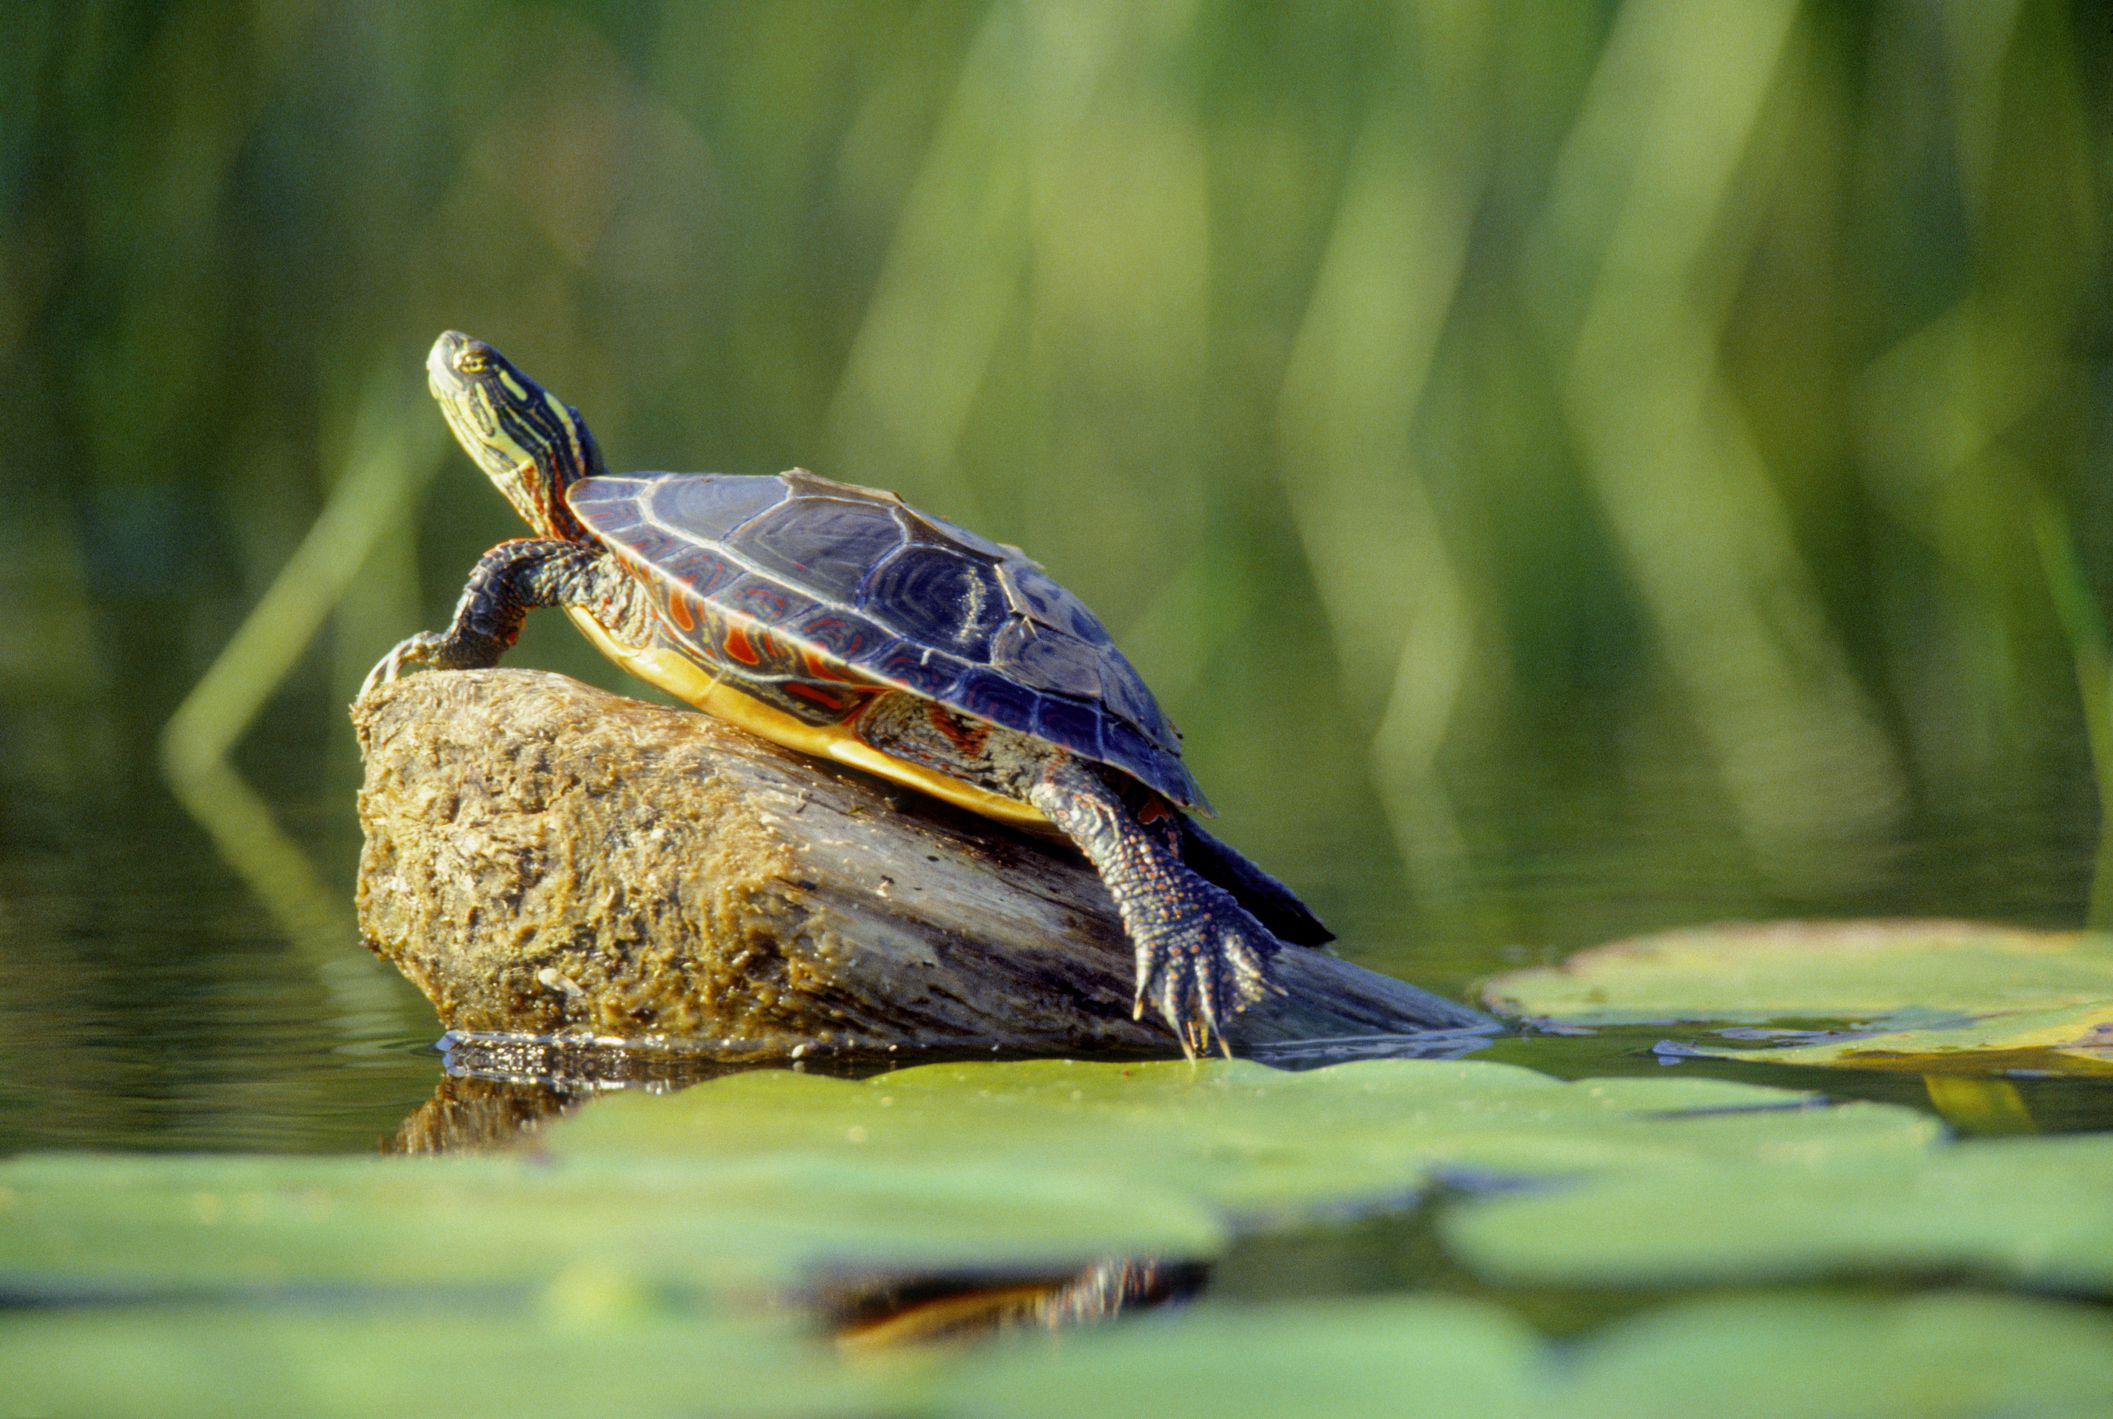 Learn how to care for pet painted turtles ultimate guide for keeping aquatic turtles in outdoor ponds nvjuhfo Gallery